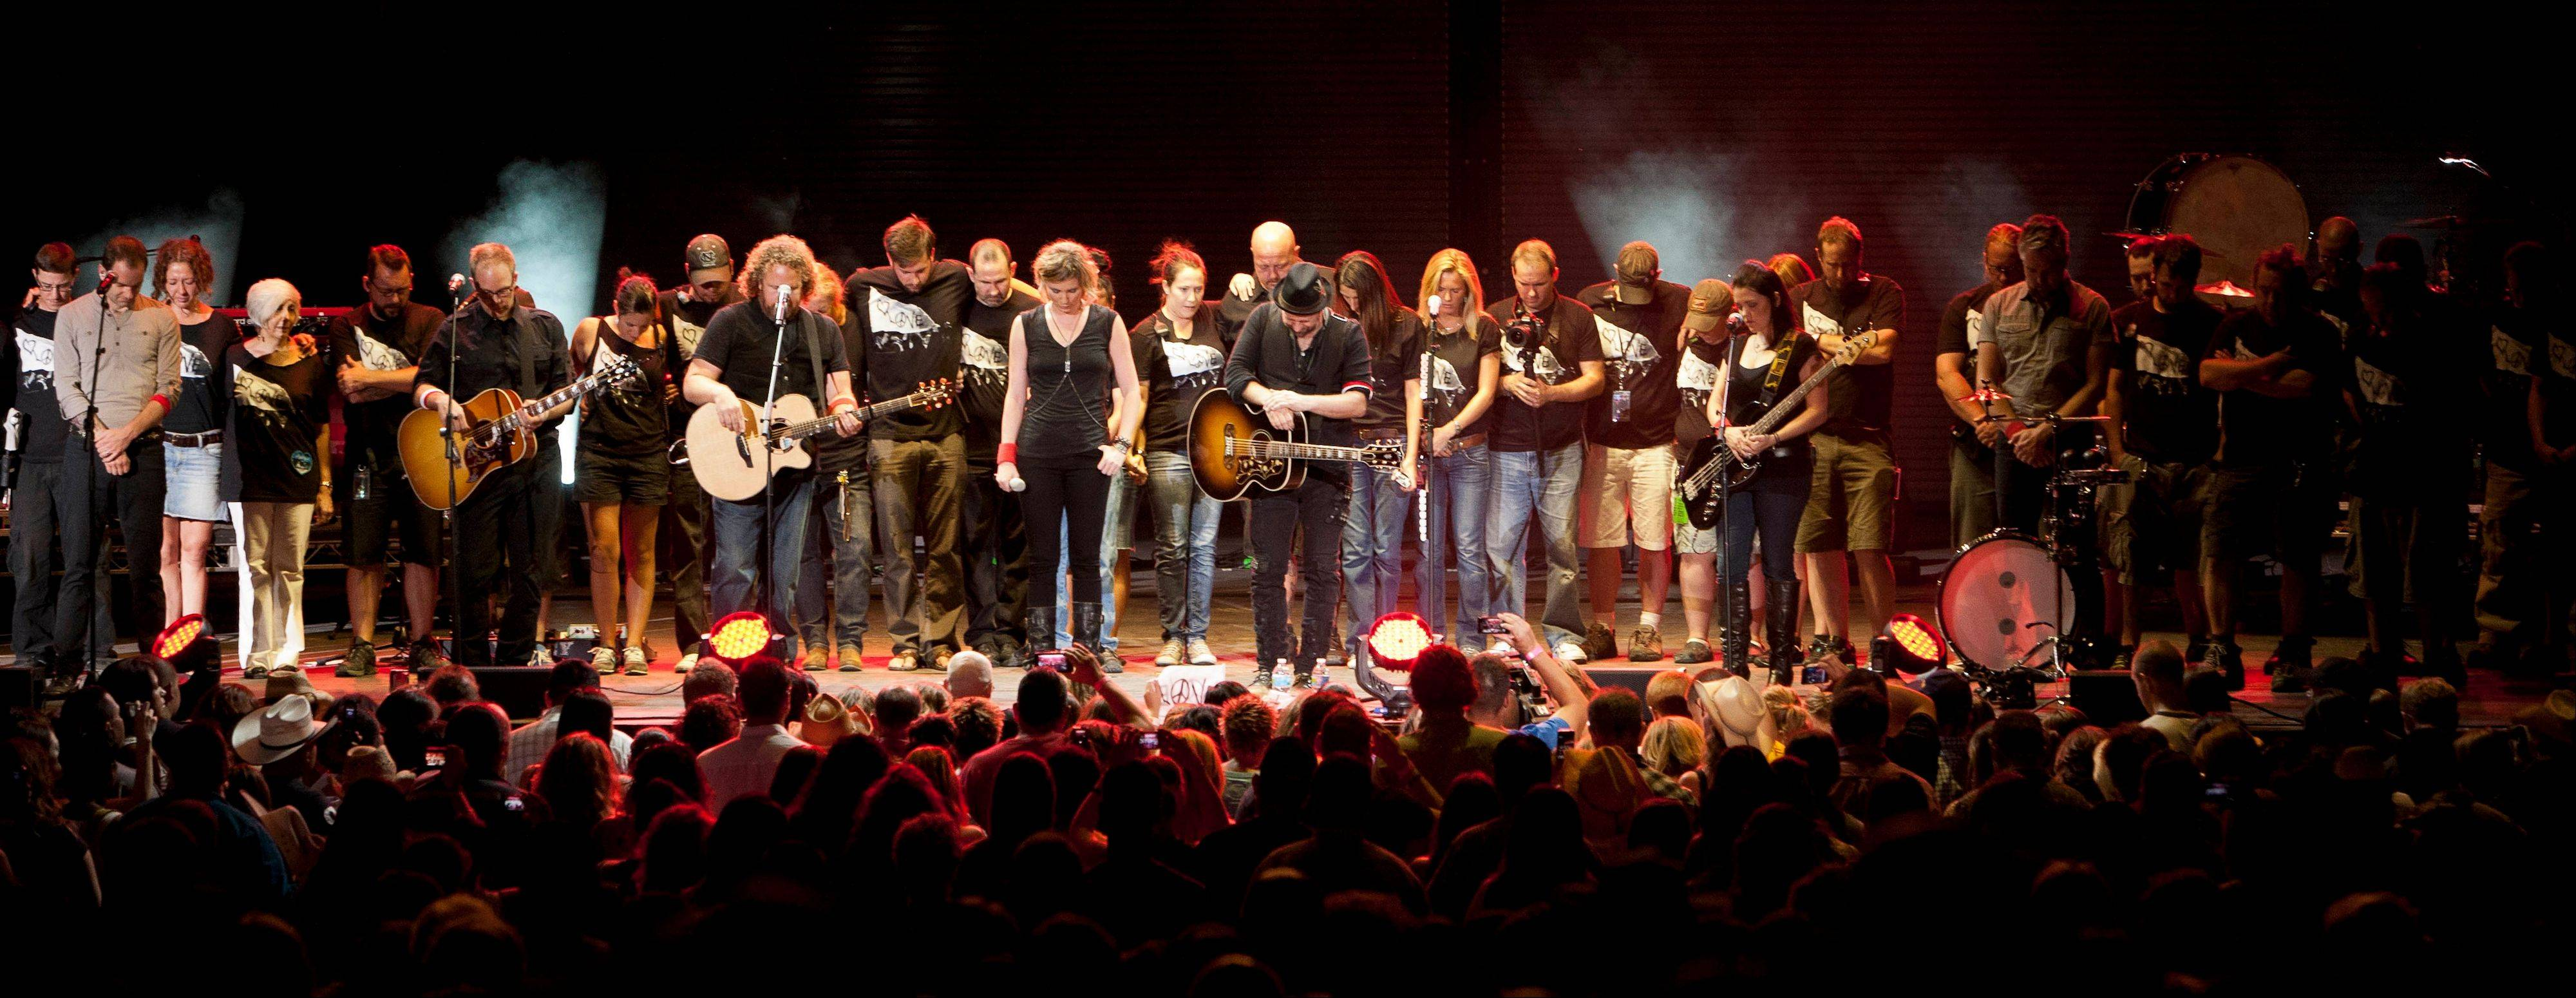 Sugarland duo Jennifer Nettles, middle left, and Kristian Bush, middle right, along with the rest of the tour crew pause for a moment of silence Thursday night in Albuquerque, N.M., for victims of the stage collapse at the Indiana State Fair that killed six people.